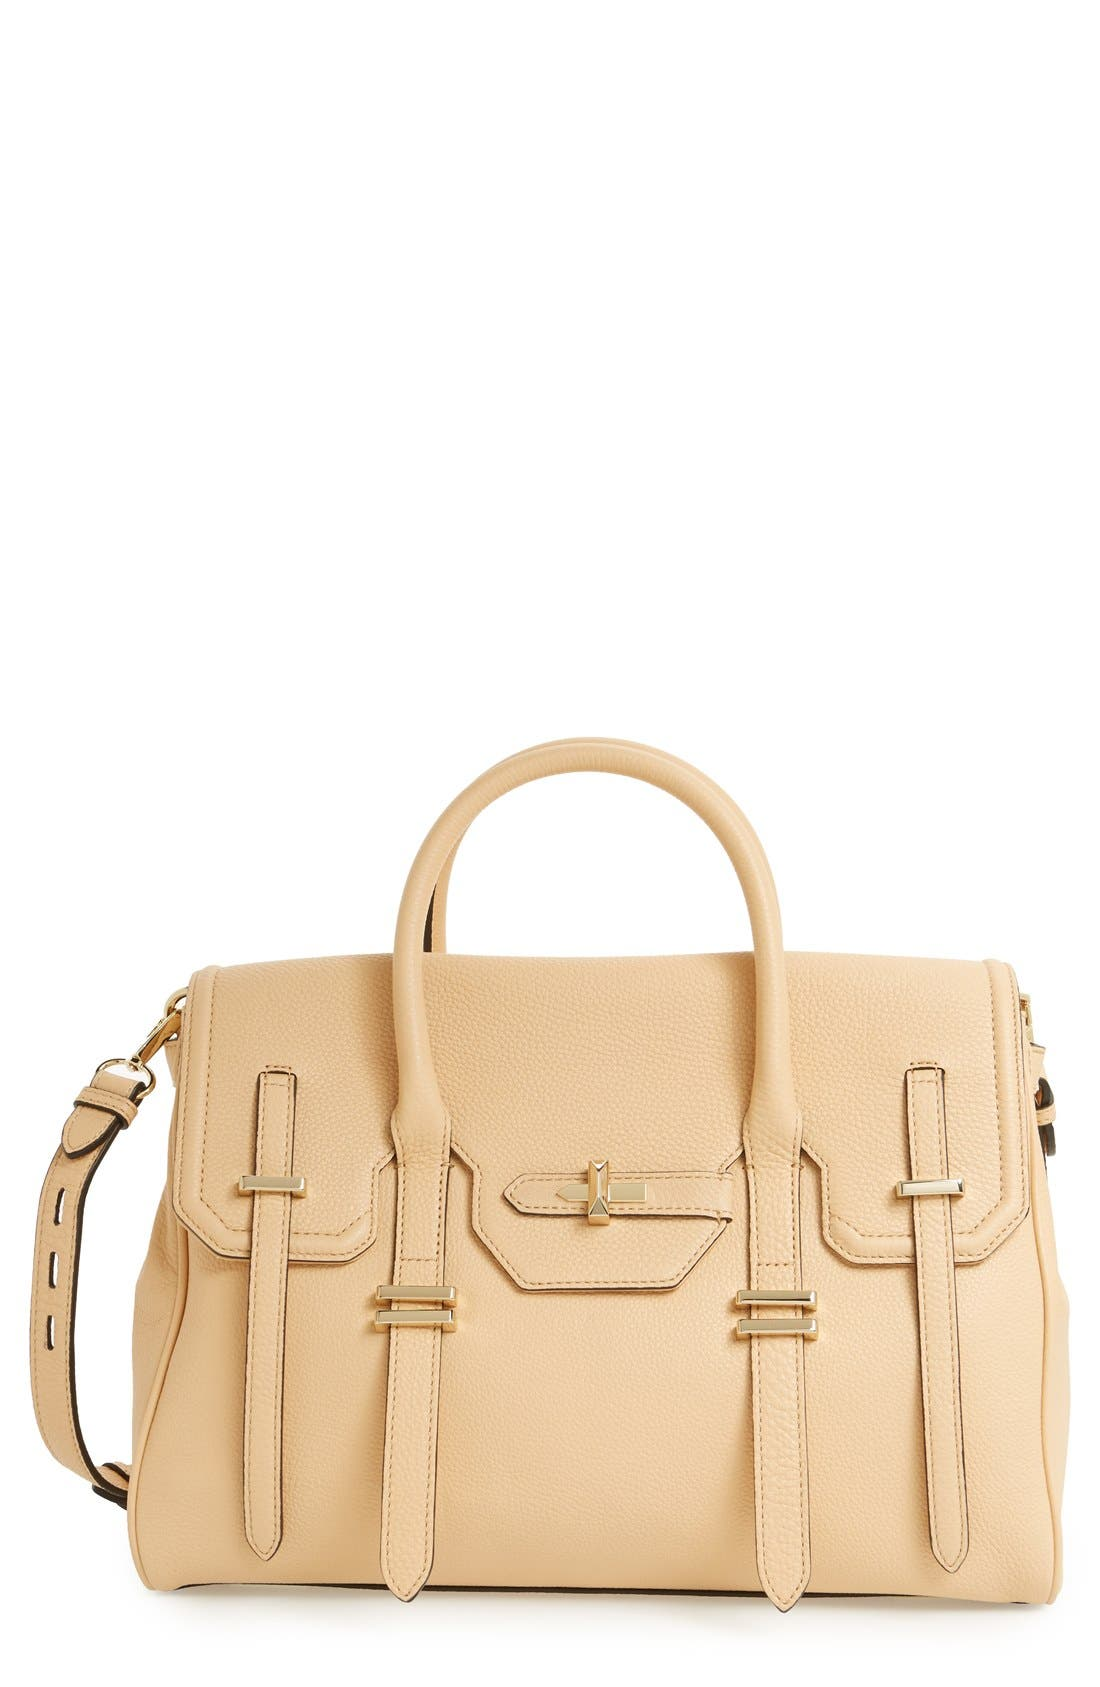 Main Image - Rebecca Minkoff 'Jules' Leather Satchel